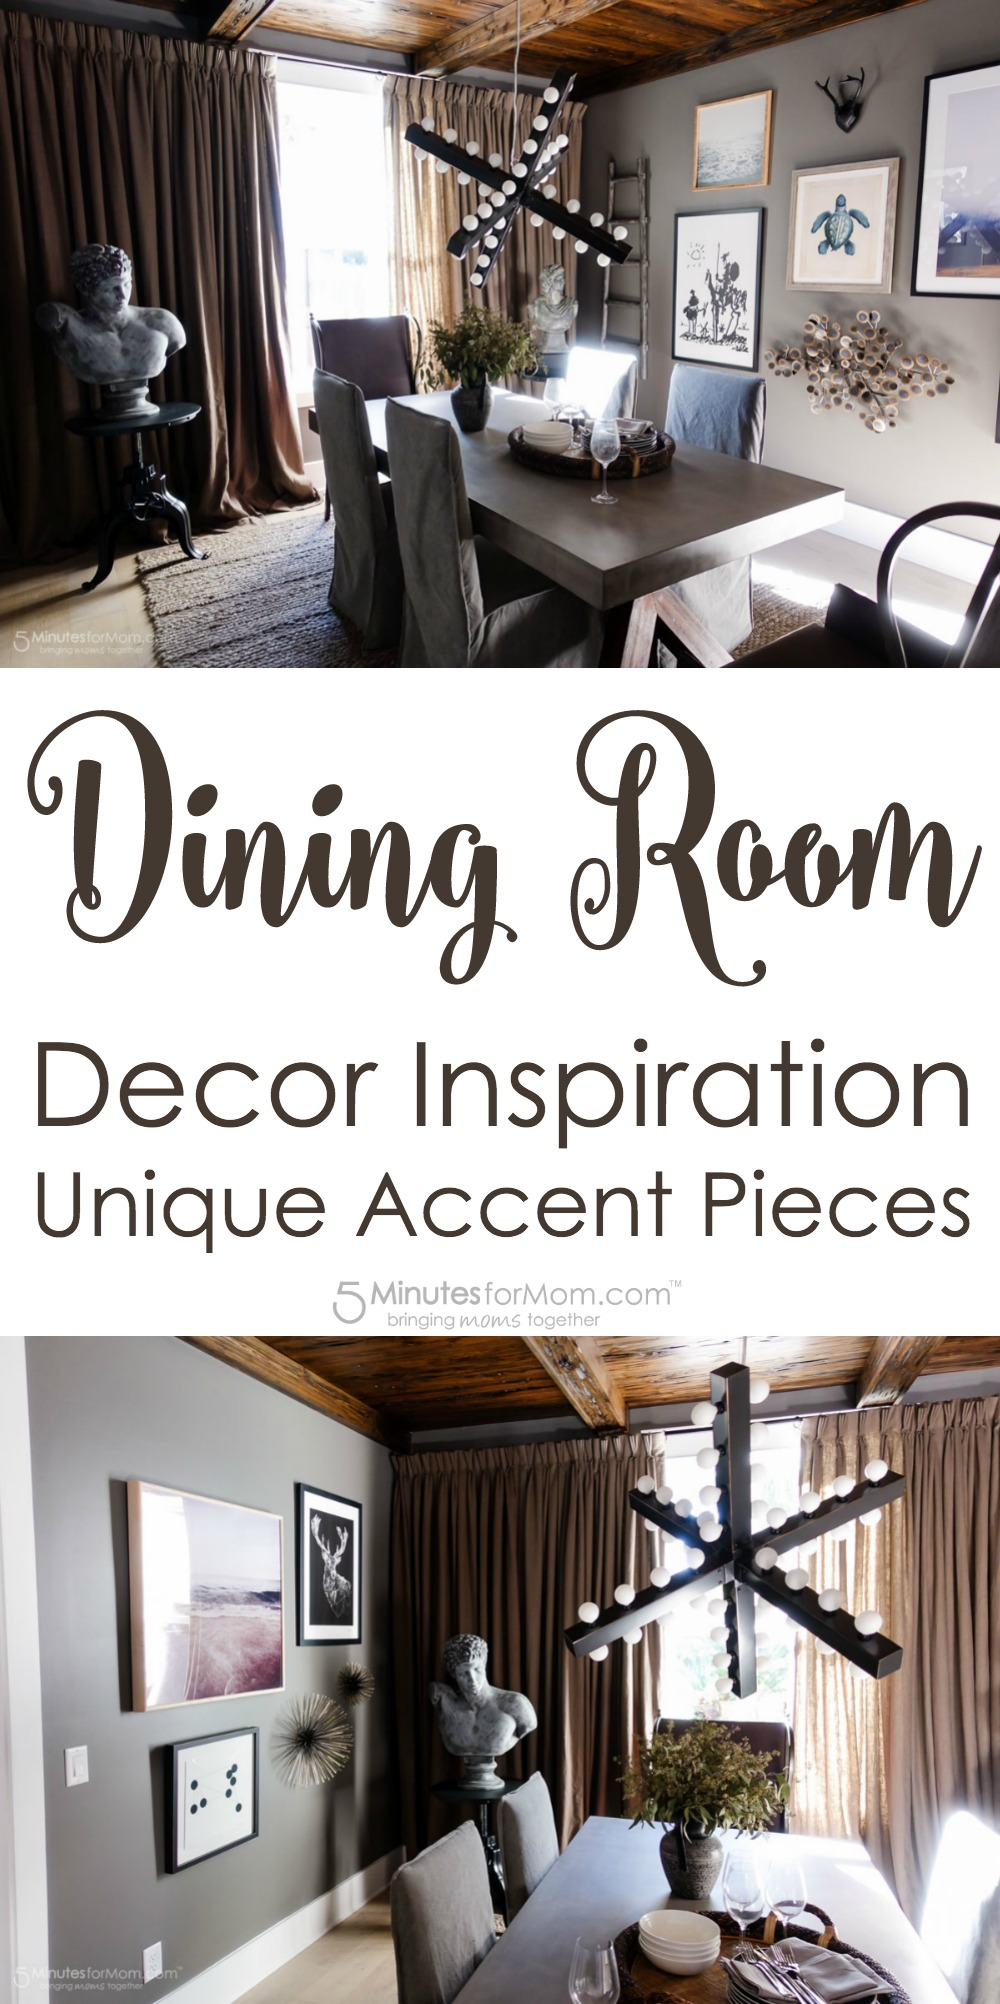 dining room decor inspiration unique accent pieces minutes for mom table cloth placemats small corner black lamp shades home goods and chairs chest drawers office storage ideas